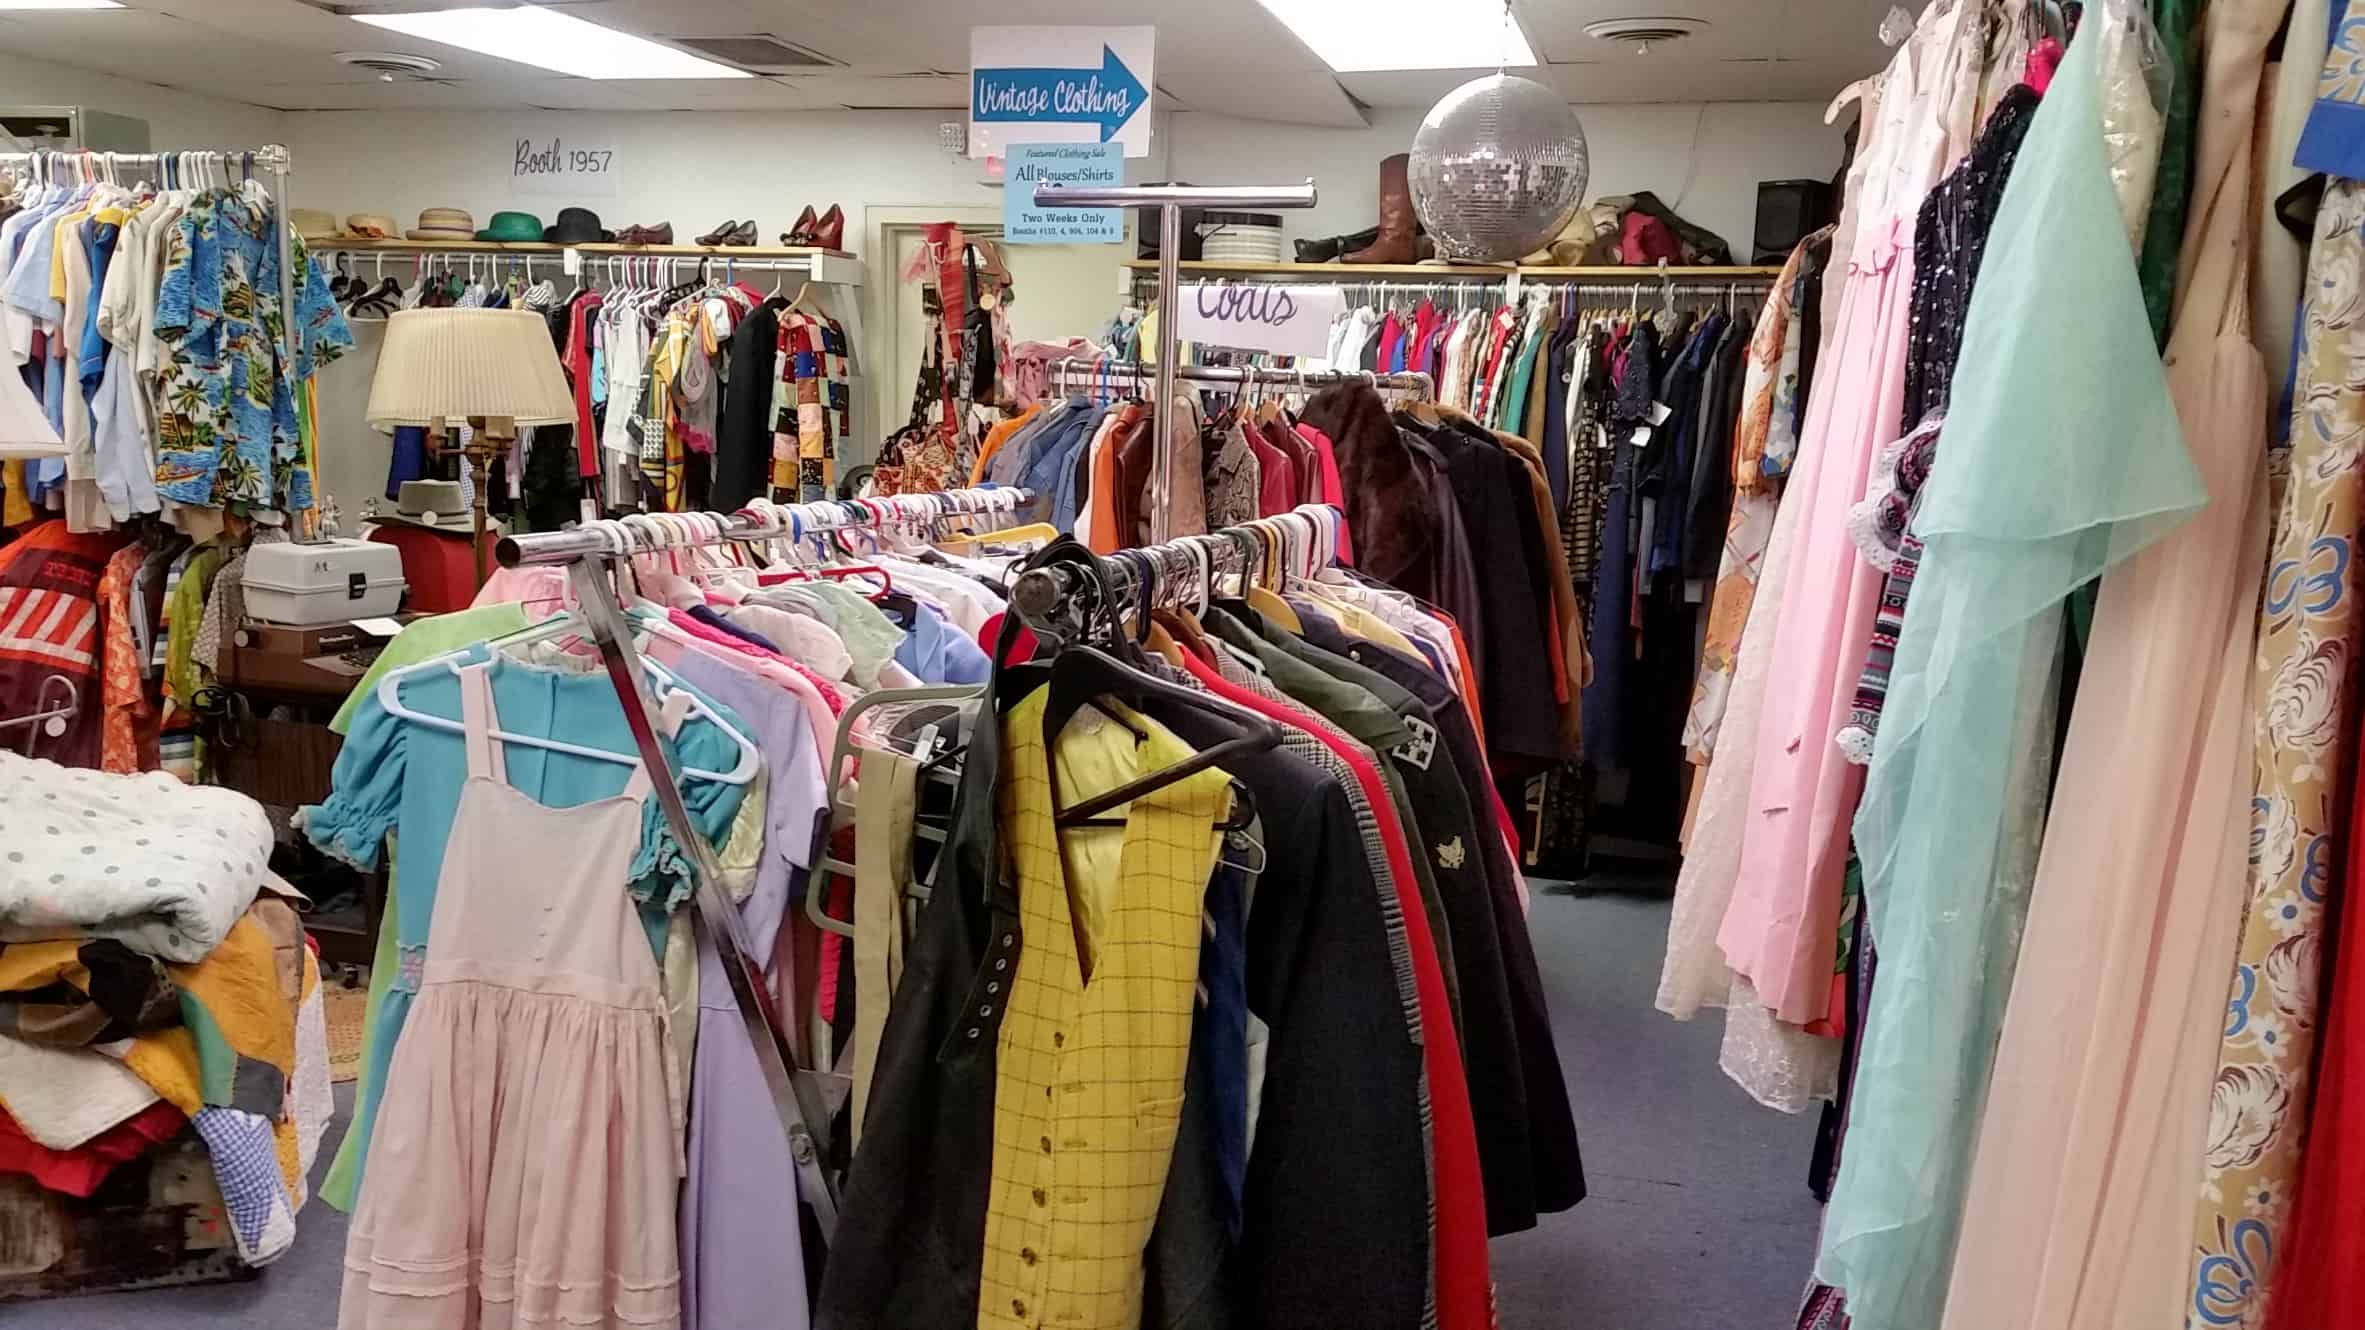 Best Vintage Thrift And Antiques Stores In Knoxville Tennessee Knoxville Tennessee Tennessee Thrifting